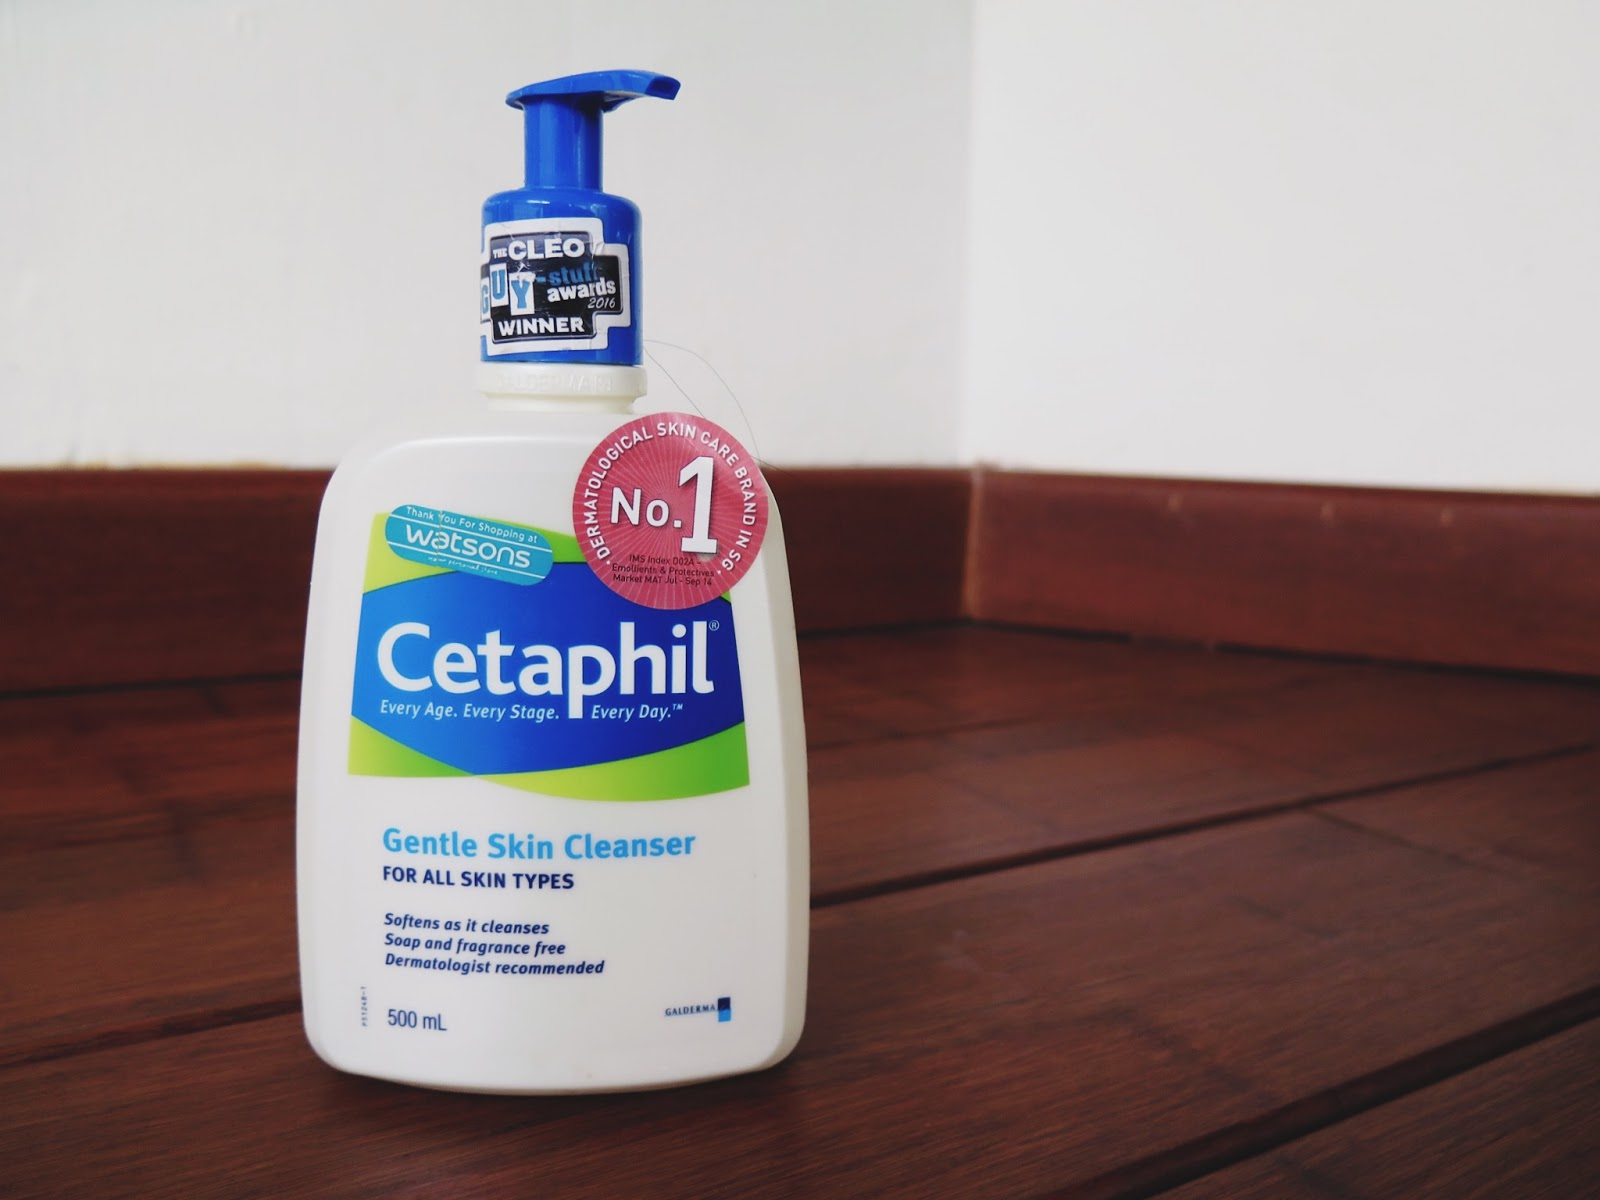 Saving This Skin Cetaphil Gentle Cleanser Review Singapore 500 Ml 500ml Now As For The Packaging Product Is Stored In A Plastic Tub And Comes Topped With Pump You Can Actually Control Amount Of Fluid